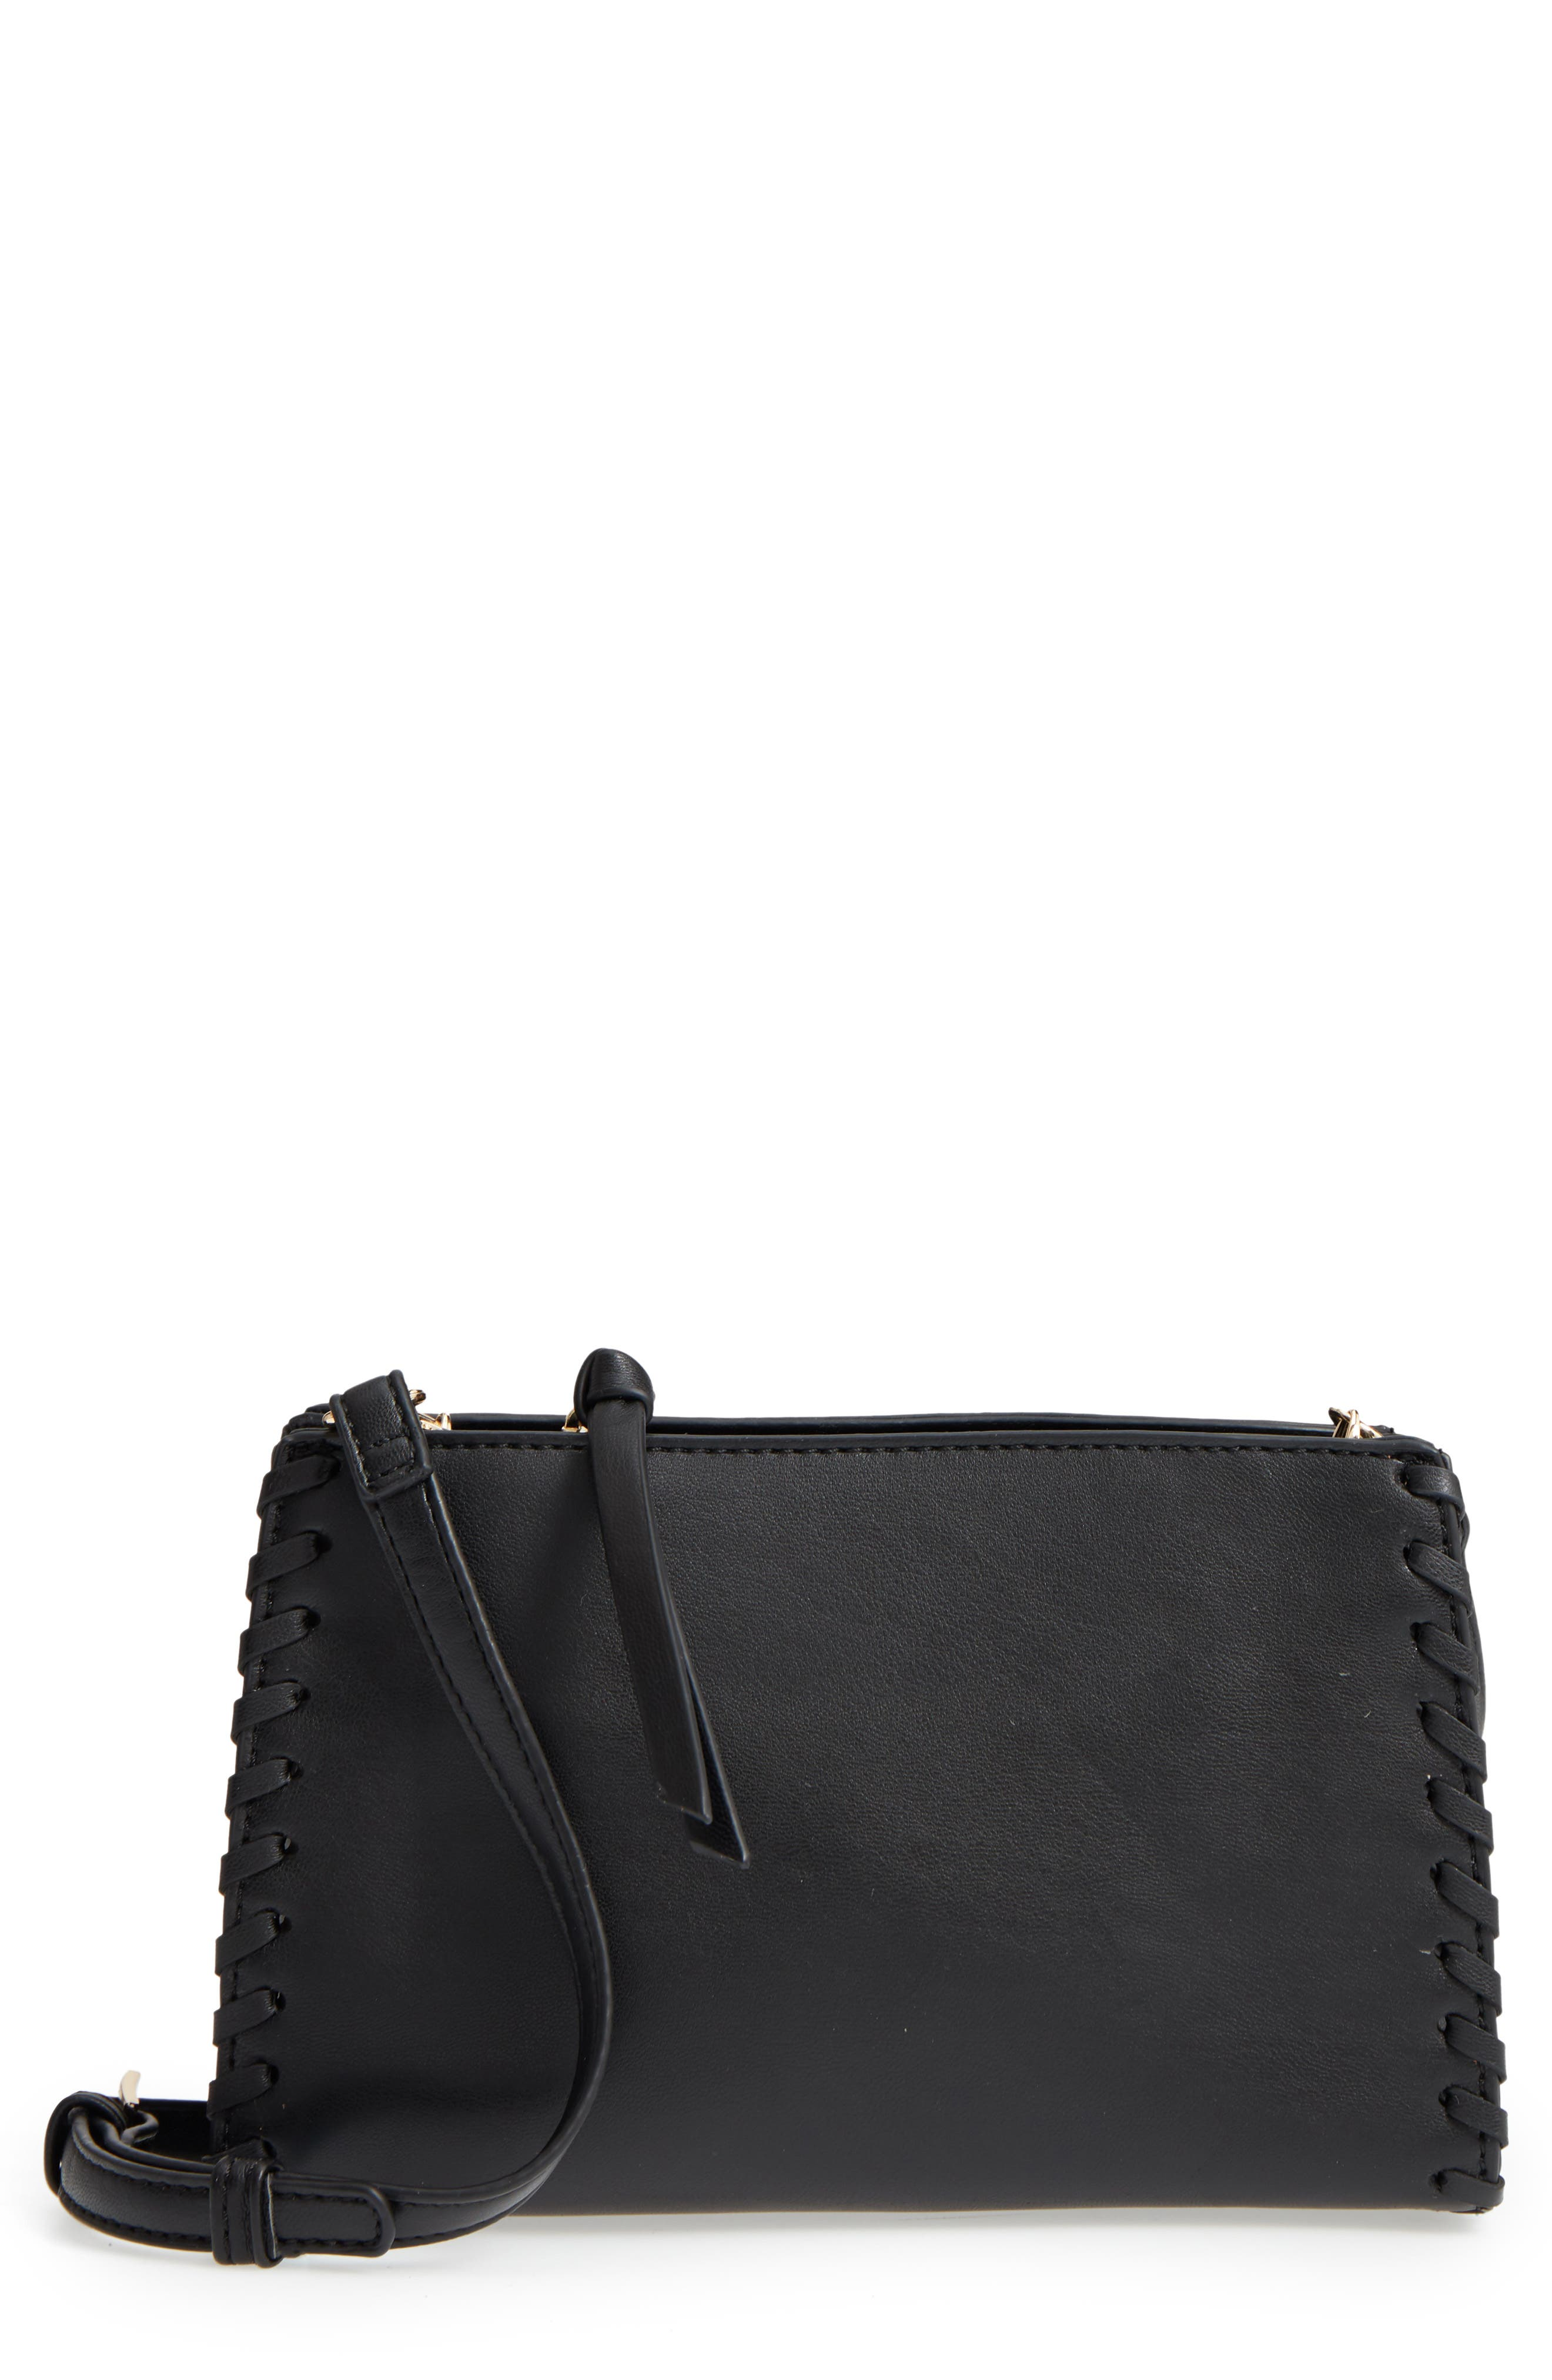 Cadence Whipstitch Faux Leather Crossbody Bag,                         Main,                         color, 001